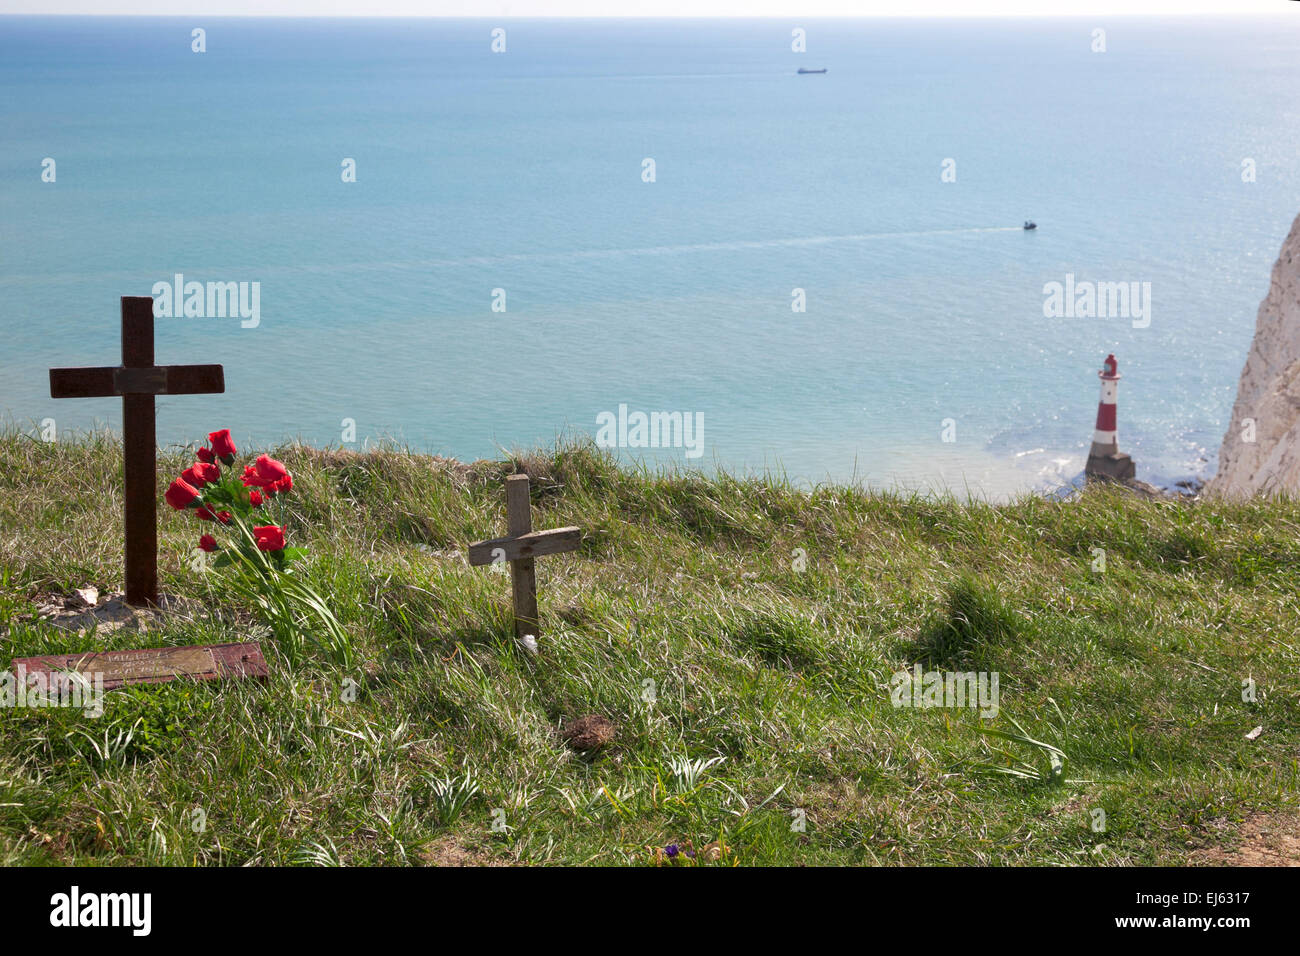 Flowers Laid Stock Photos & Flowers Laid Stock Images - Alamy